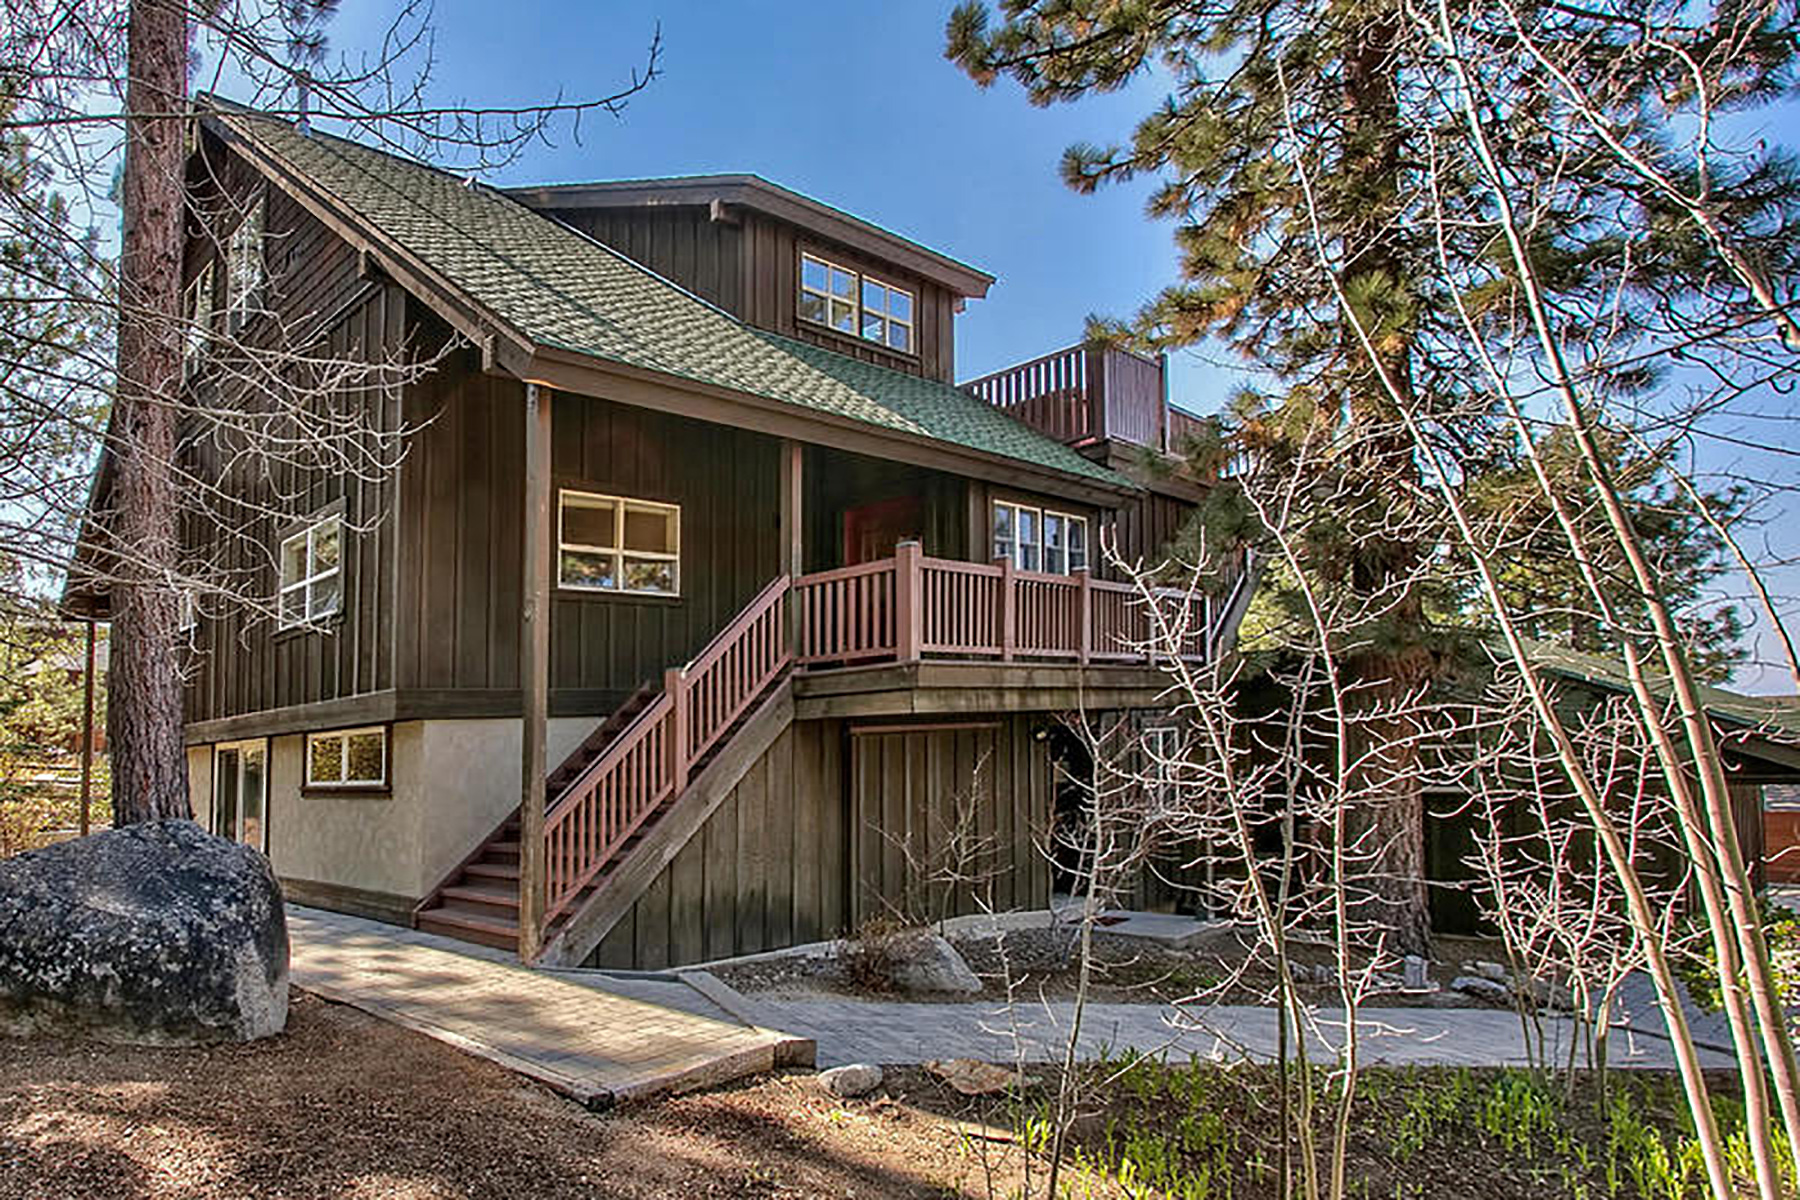 Property 为 销售 在 3802 Lucinda Court, South Lake Tahoe, CA 96150 3802 Lucinda Court 南太浩湖, 加利福尼亚州 96150 美国